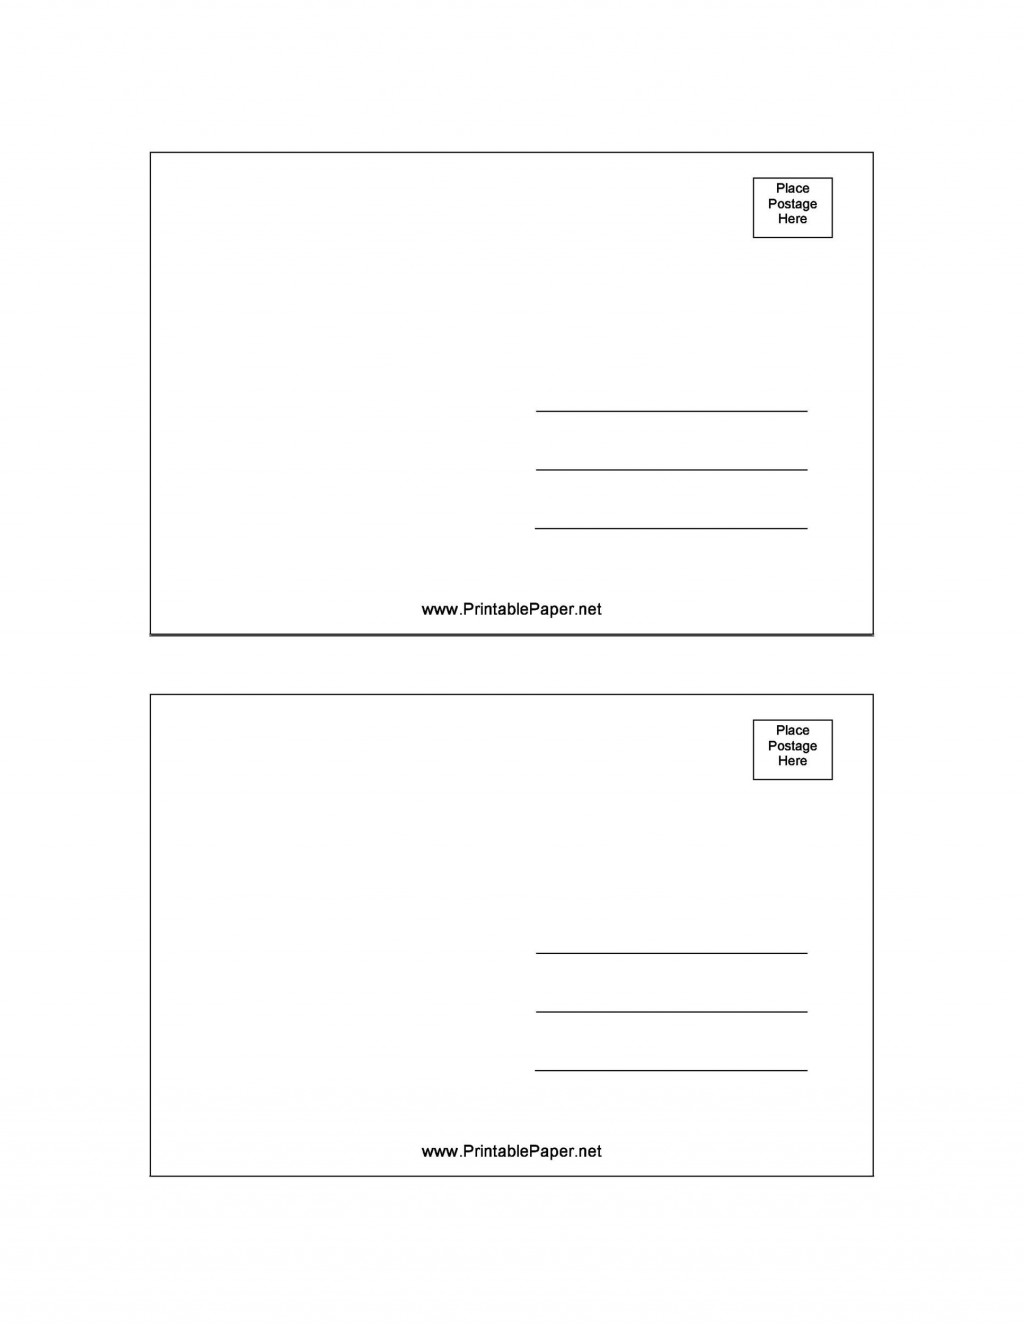 007 Best Postcard Template Download Microsoft Word High Definition Large